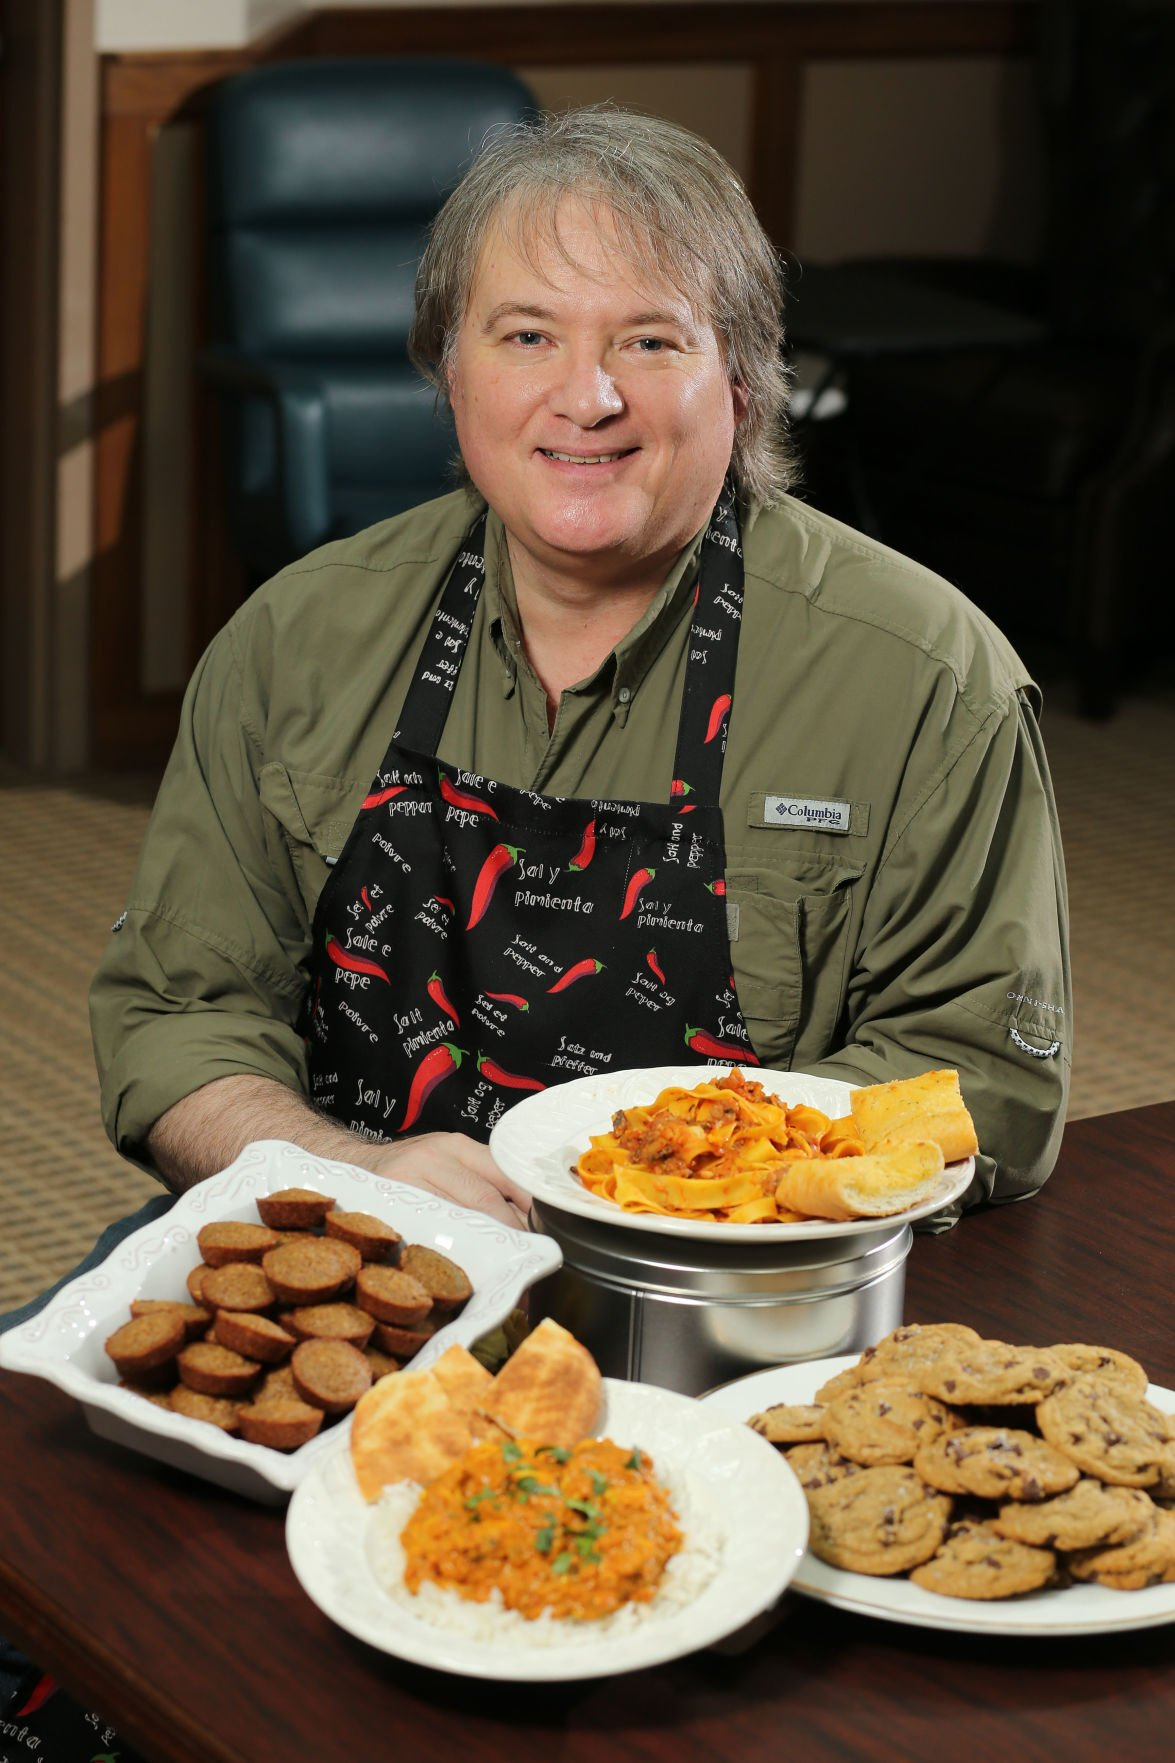 djr-2021-01-13-food-cook-hargett-arp1